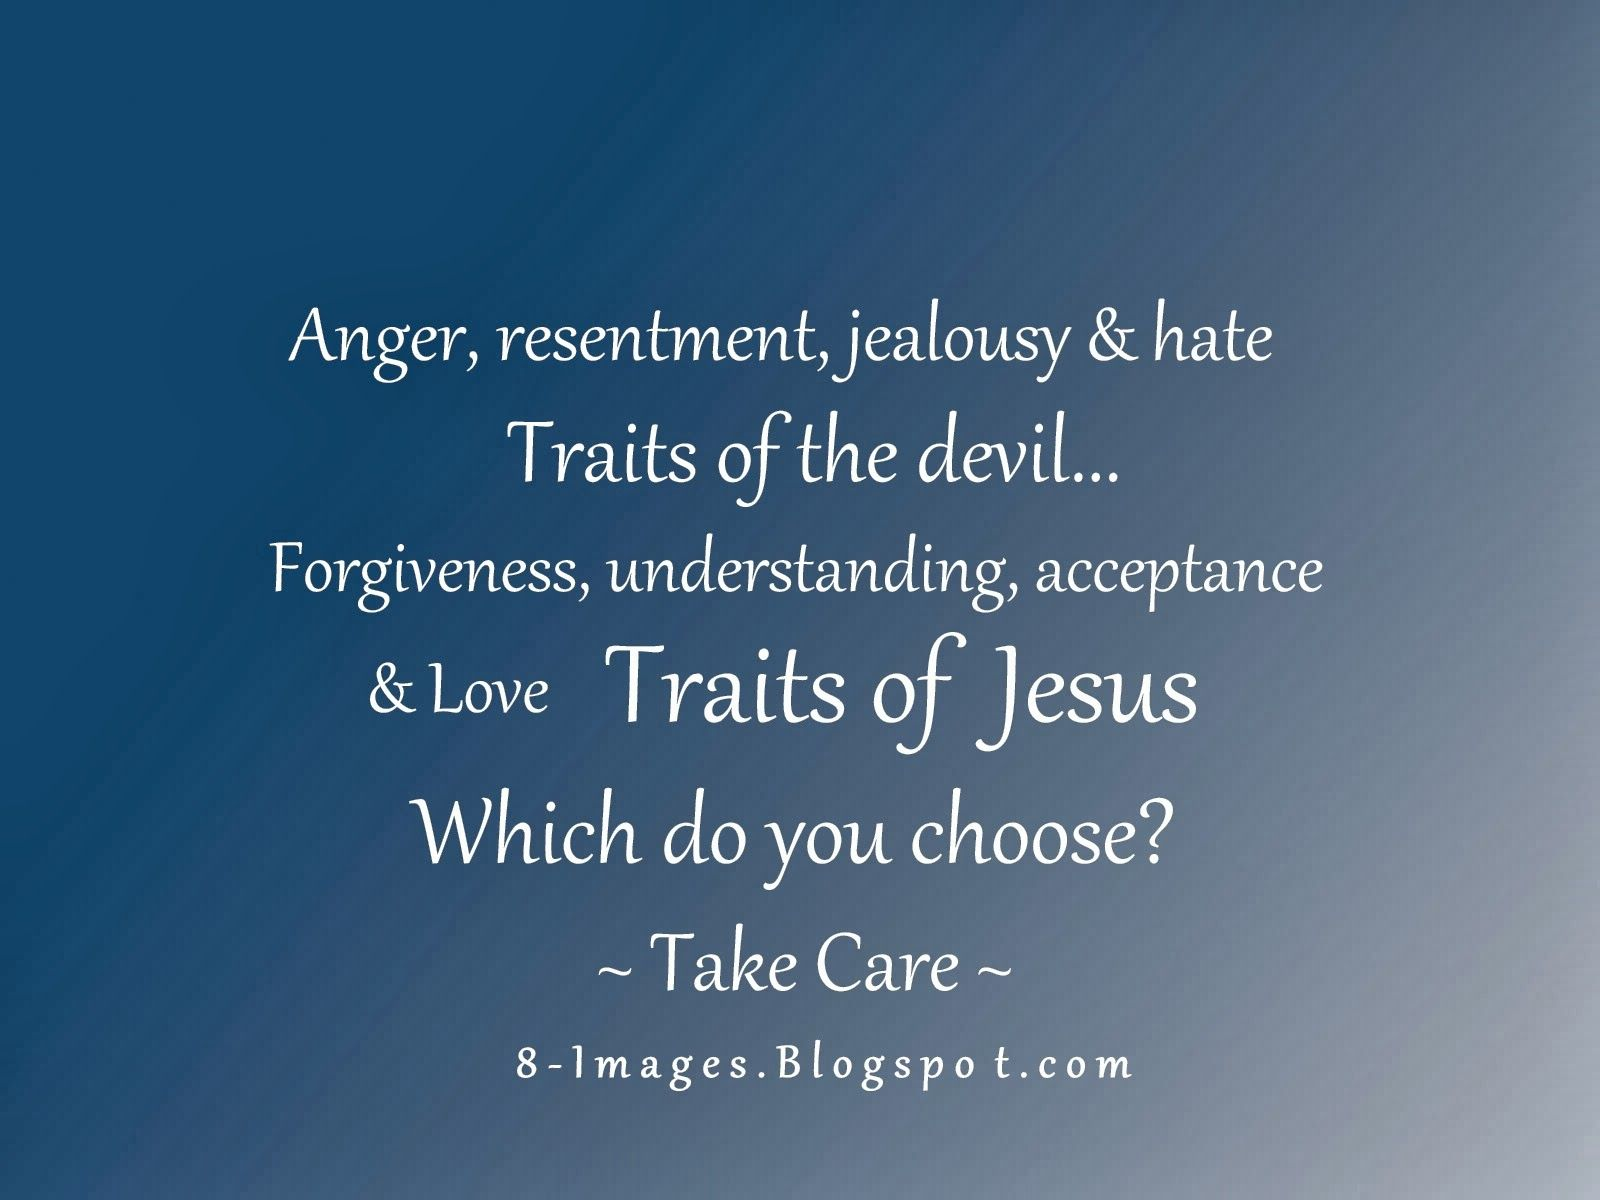 quotes letting go of anger bitterness and resentment anger quotes letting go of anger bitterness and resentment anger resentment jealousy hate